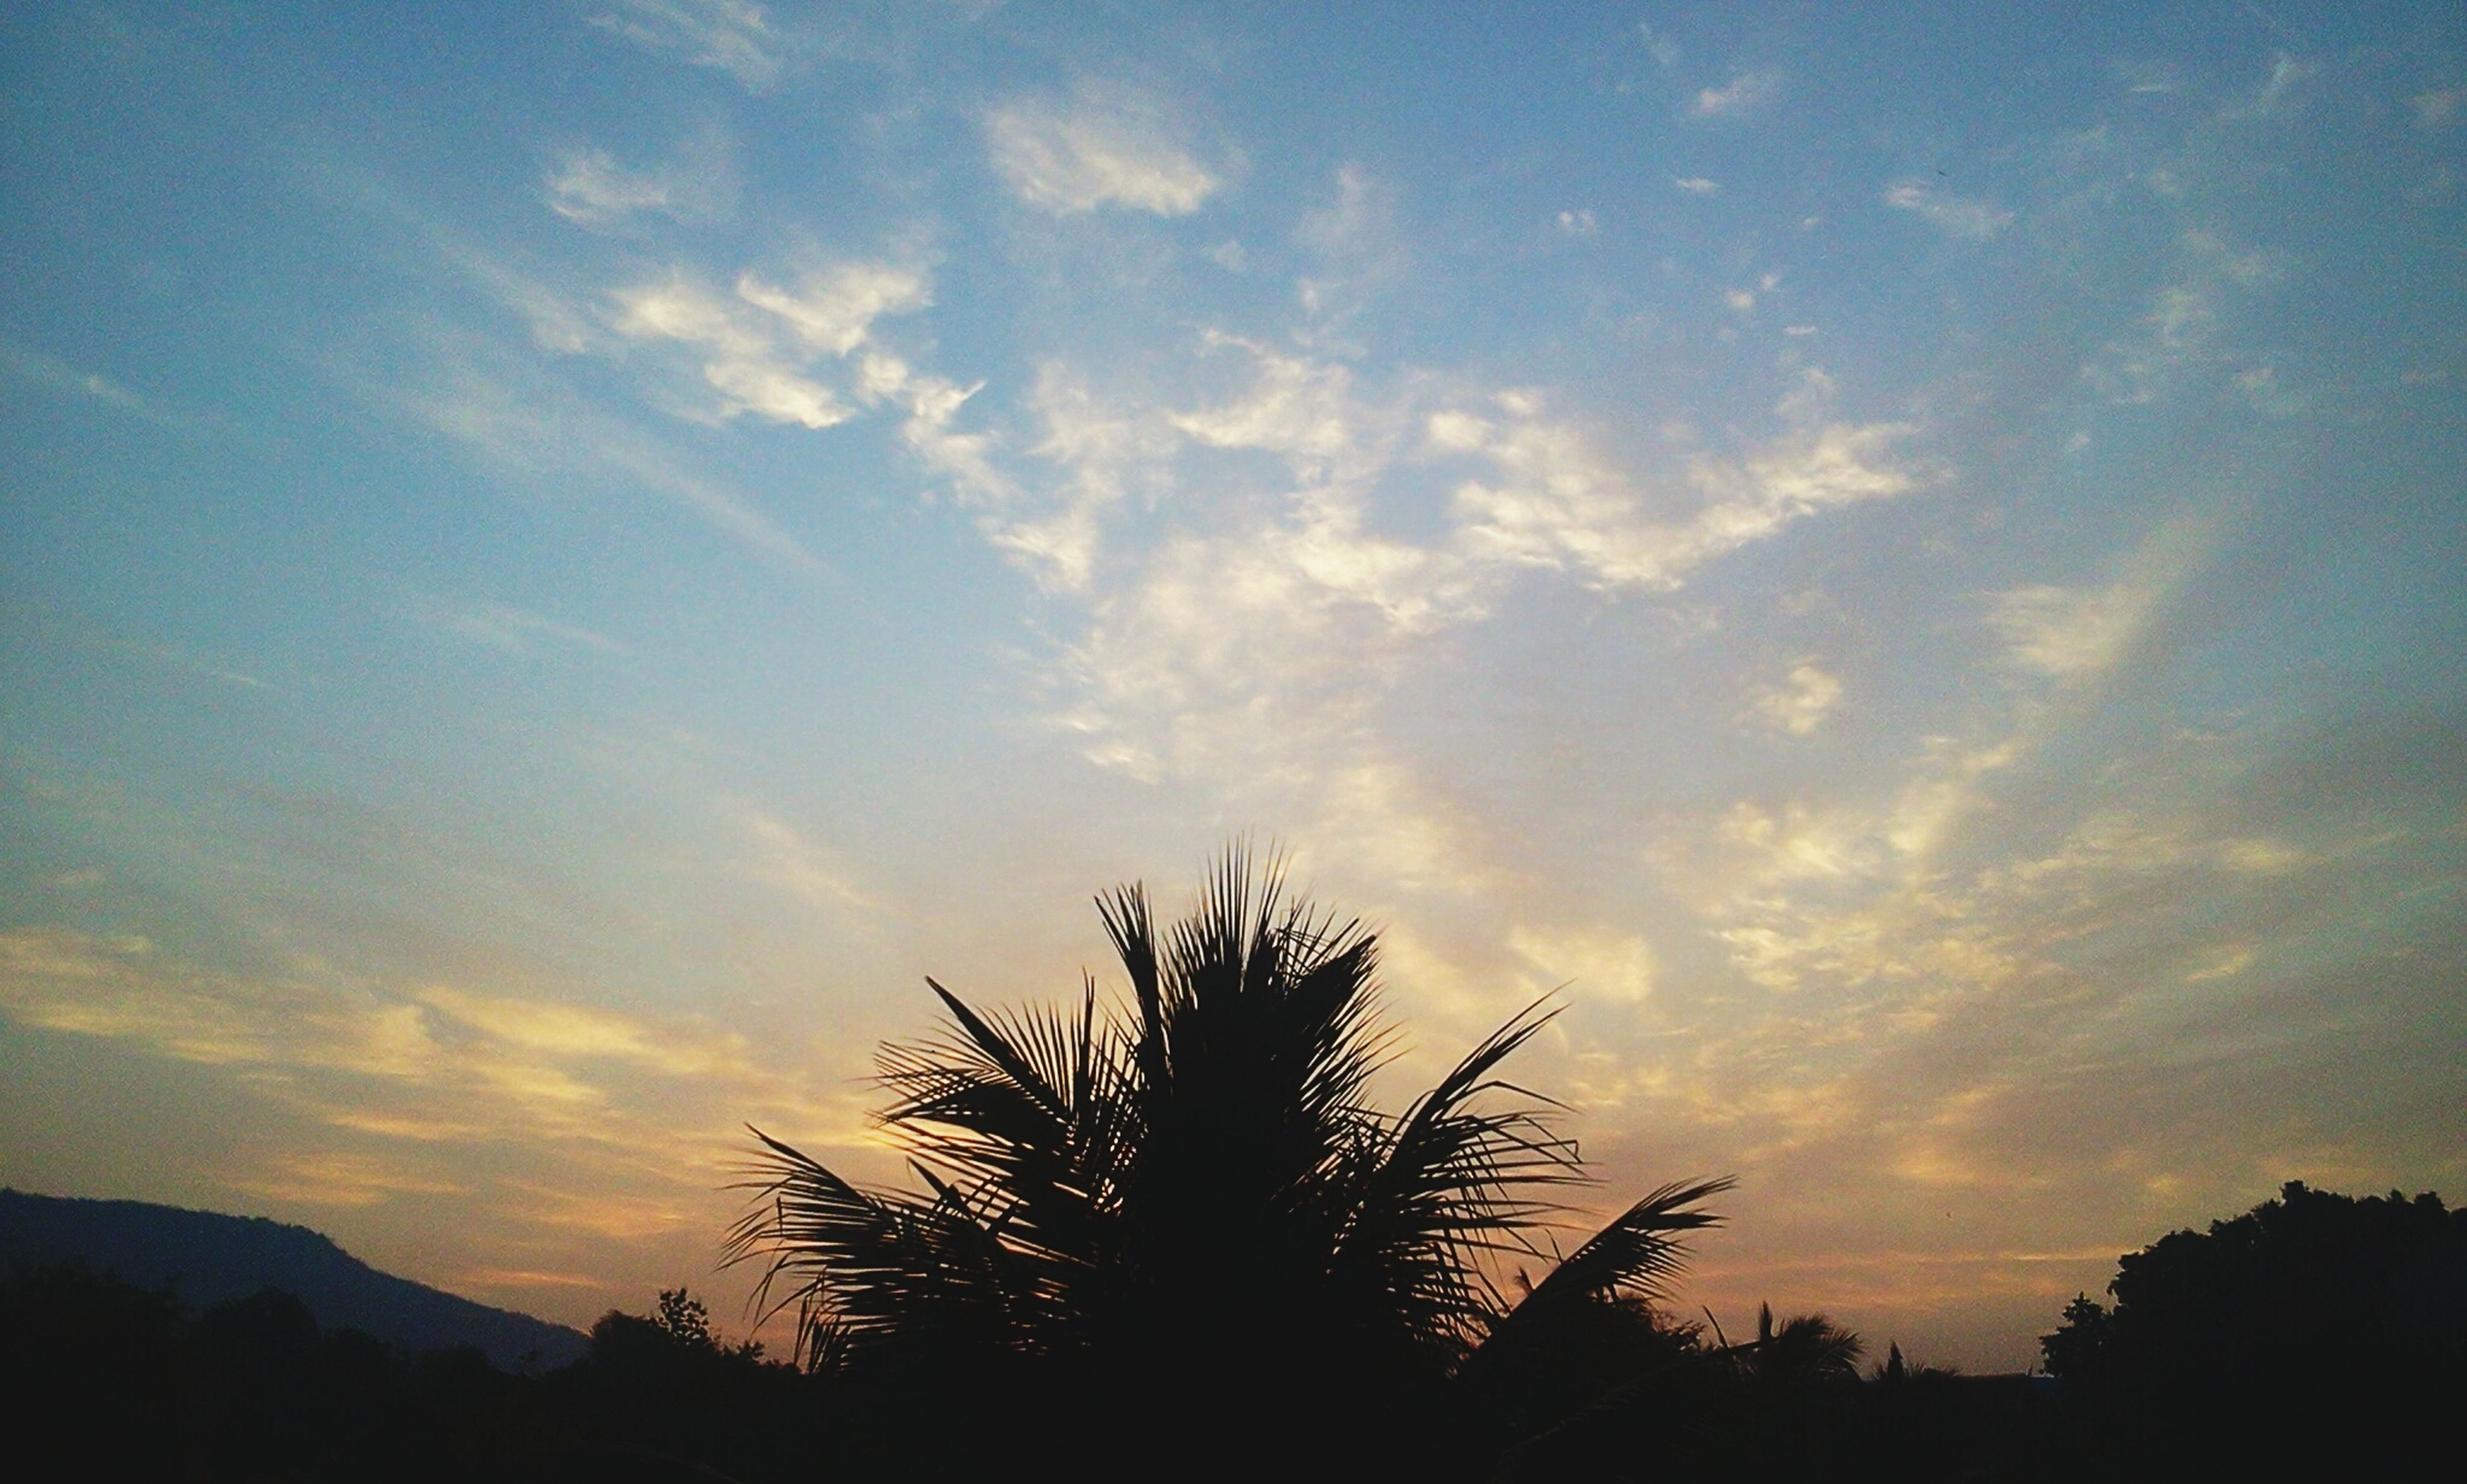 silhouette, sunset, sky, tranquility, tranquil scene, scenics, tree, beauty in nature, cloud - sky, nature, low angle view, idyllic, cloud, landscape, outdoors, outline, non-urban scene, orange color, non urban scene, no people